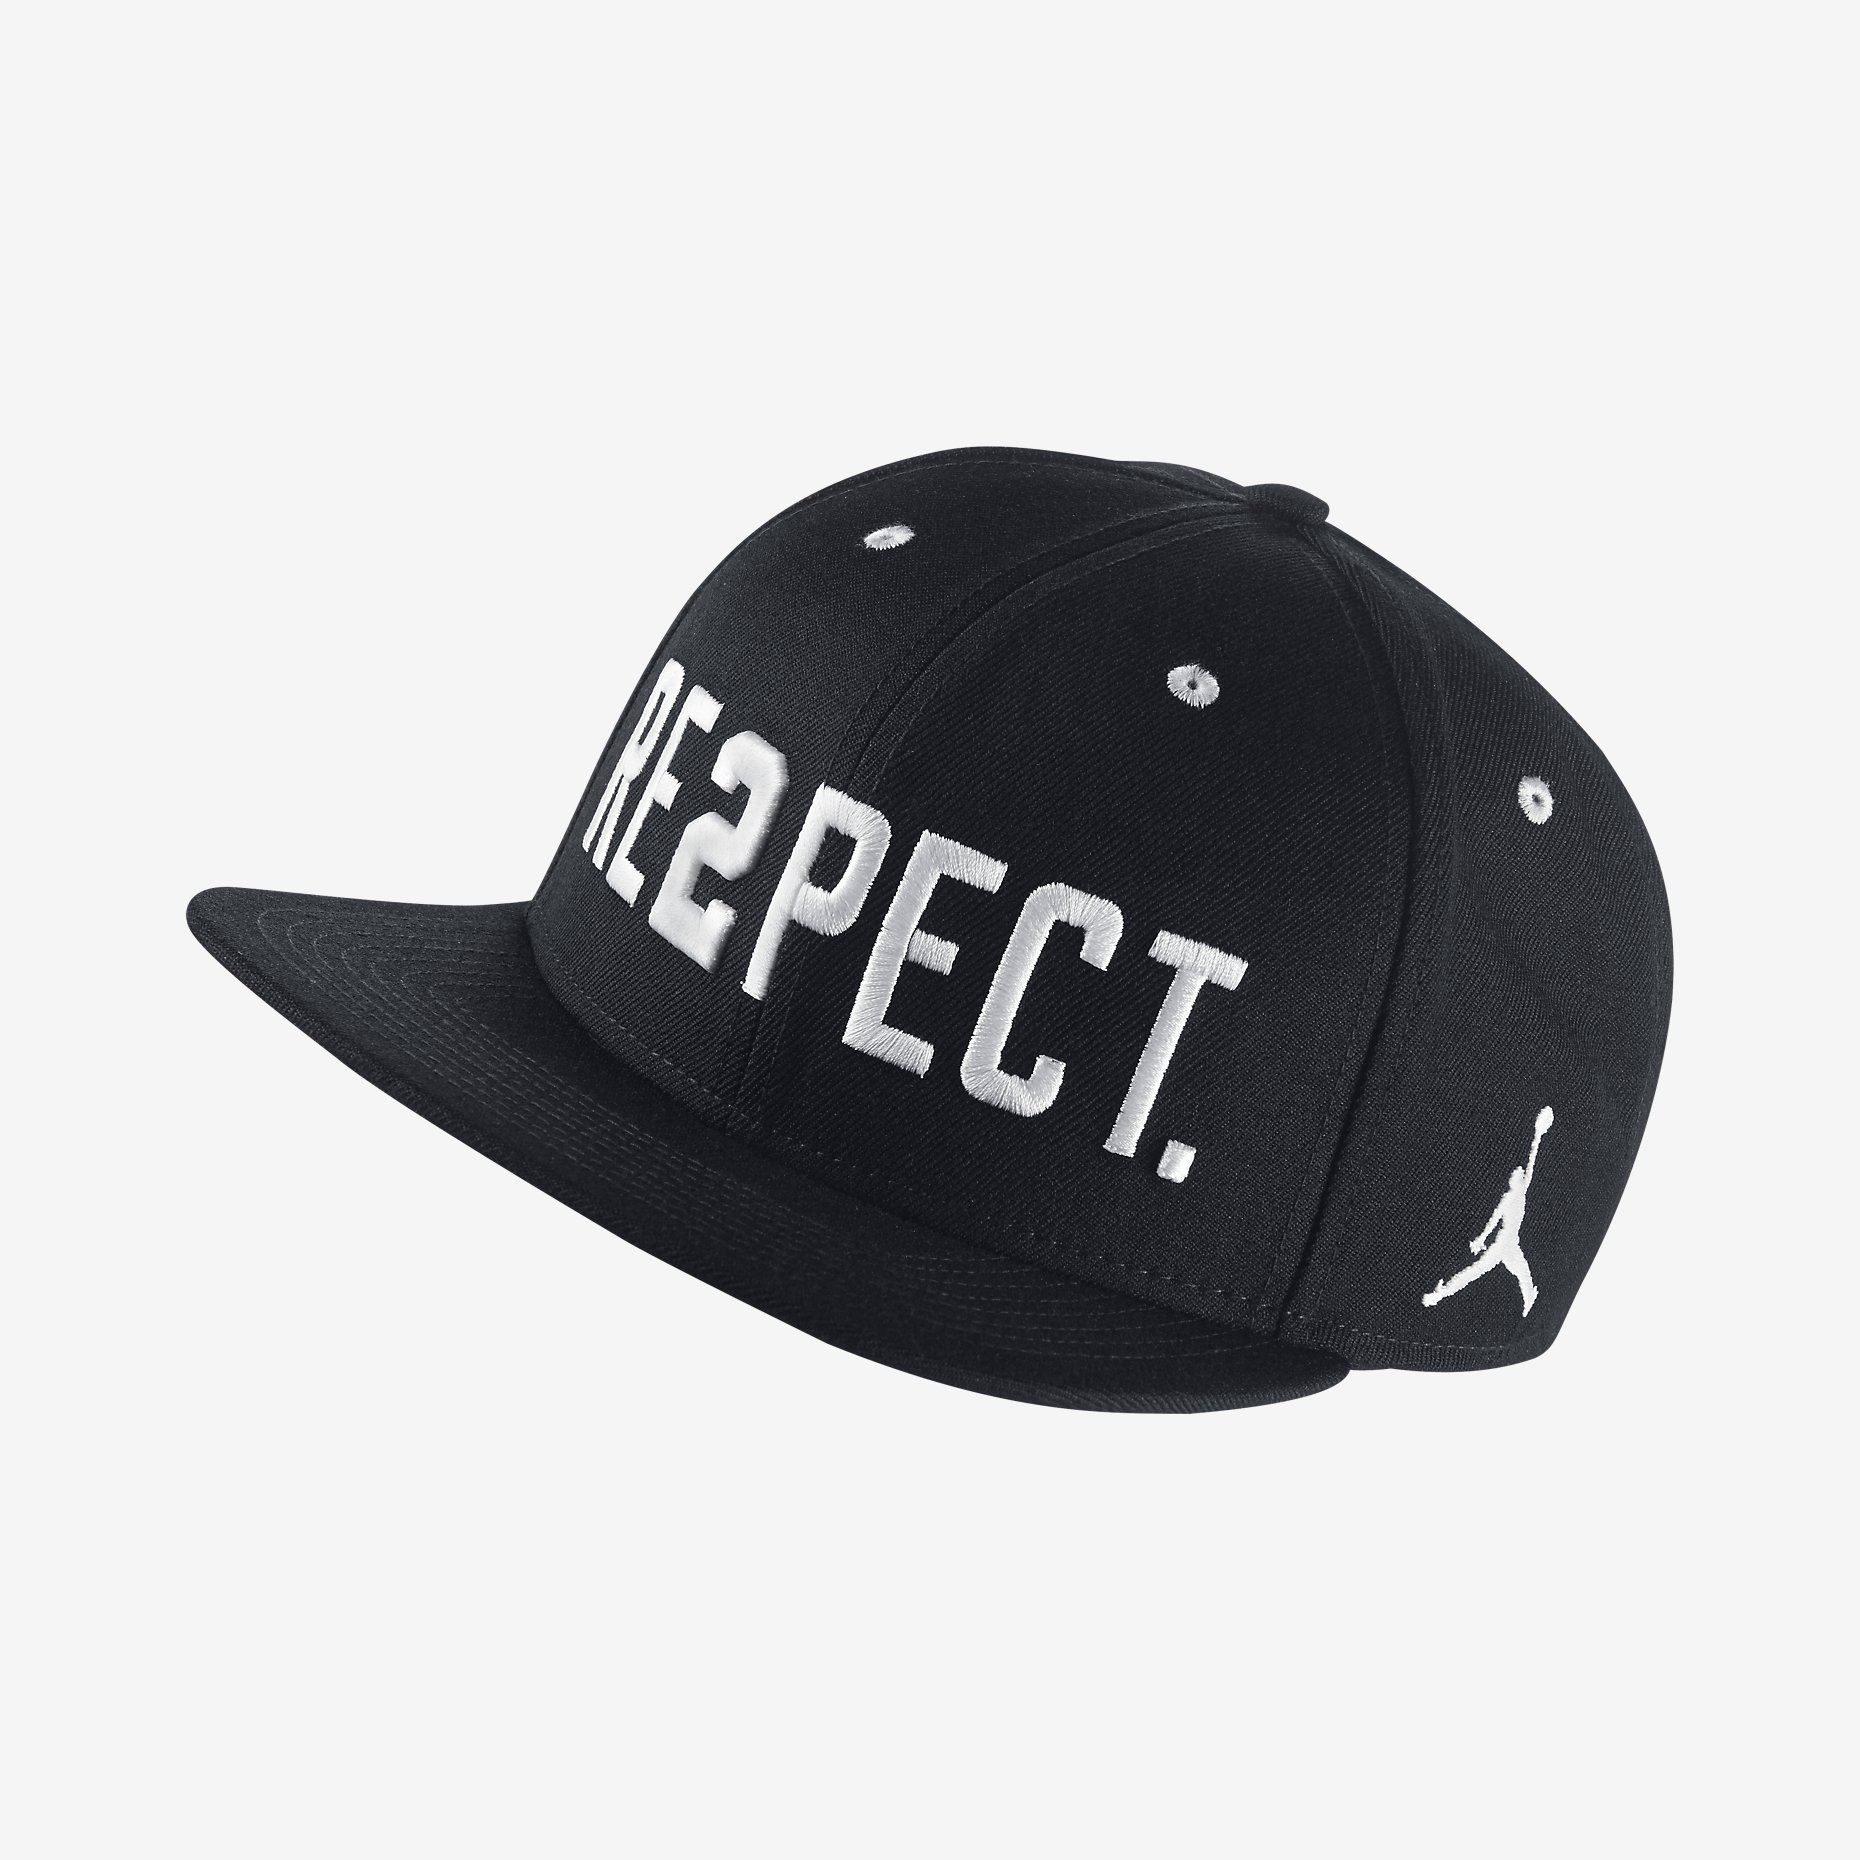 Jordan-Re2pect-Jeter-Adjustable-Hat-715818_010_A.jpg